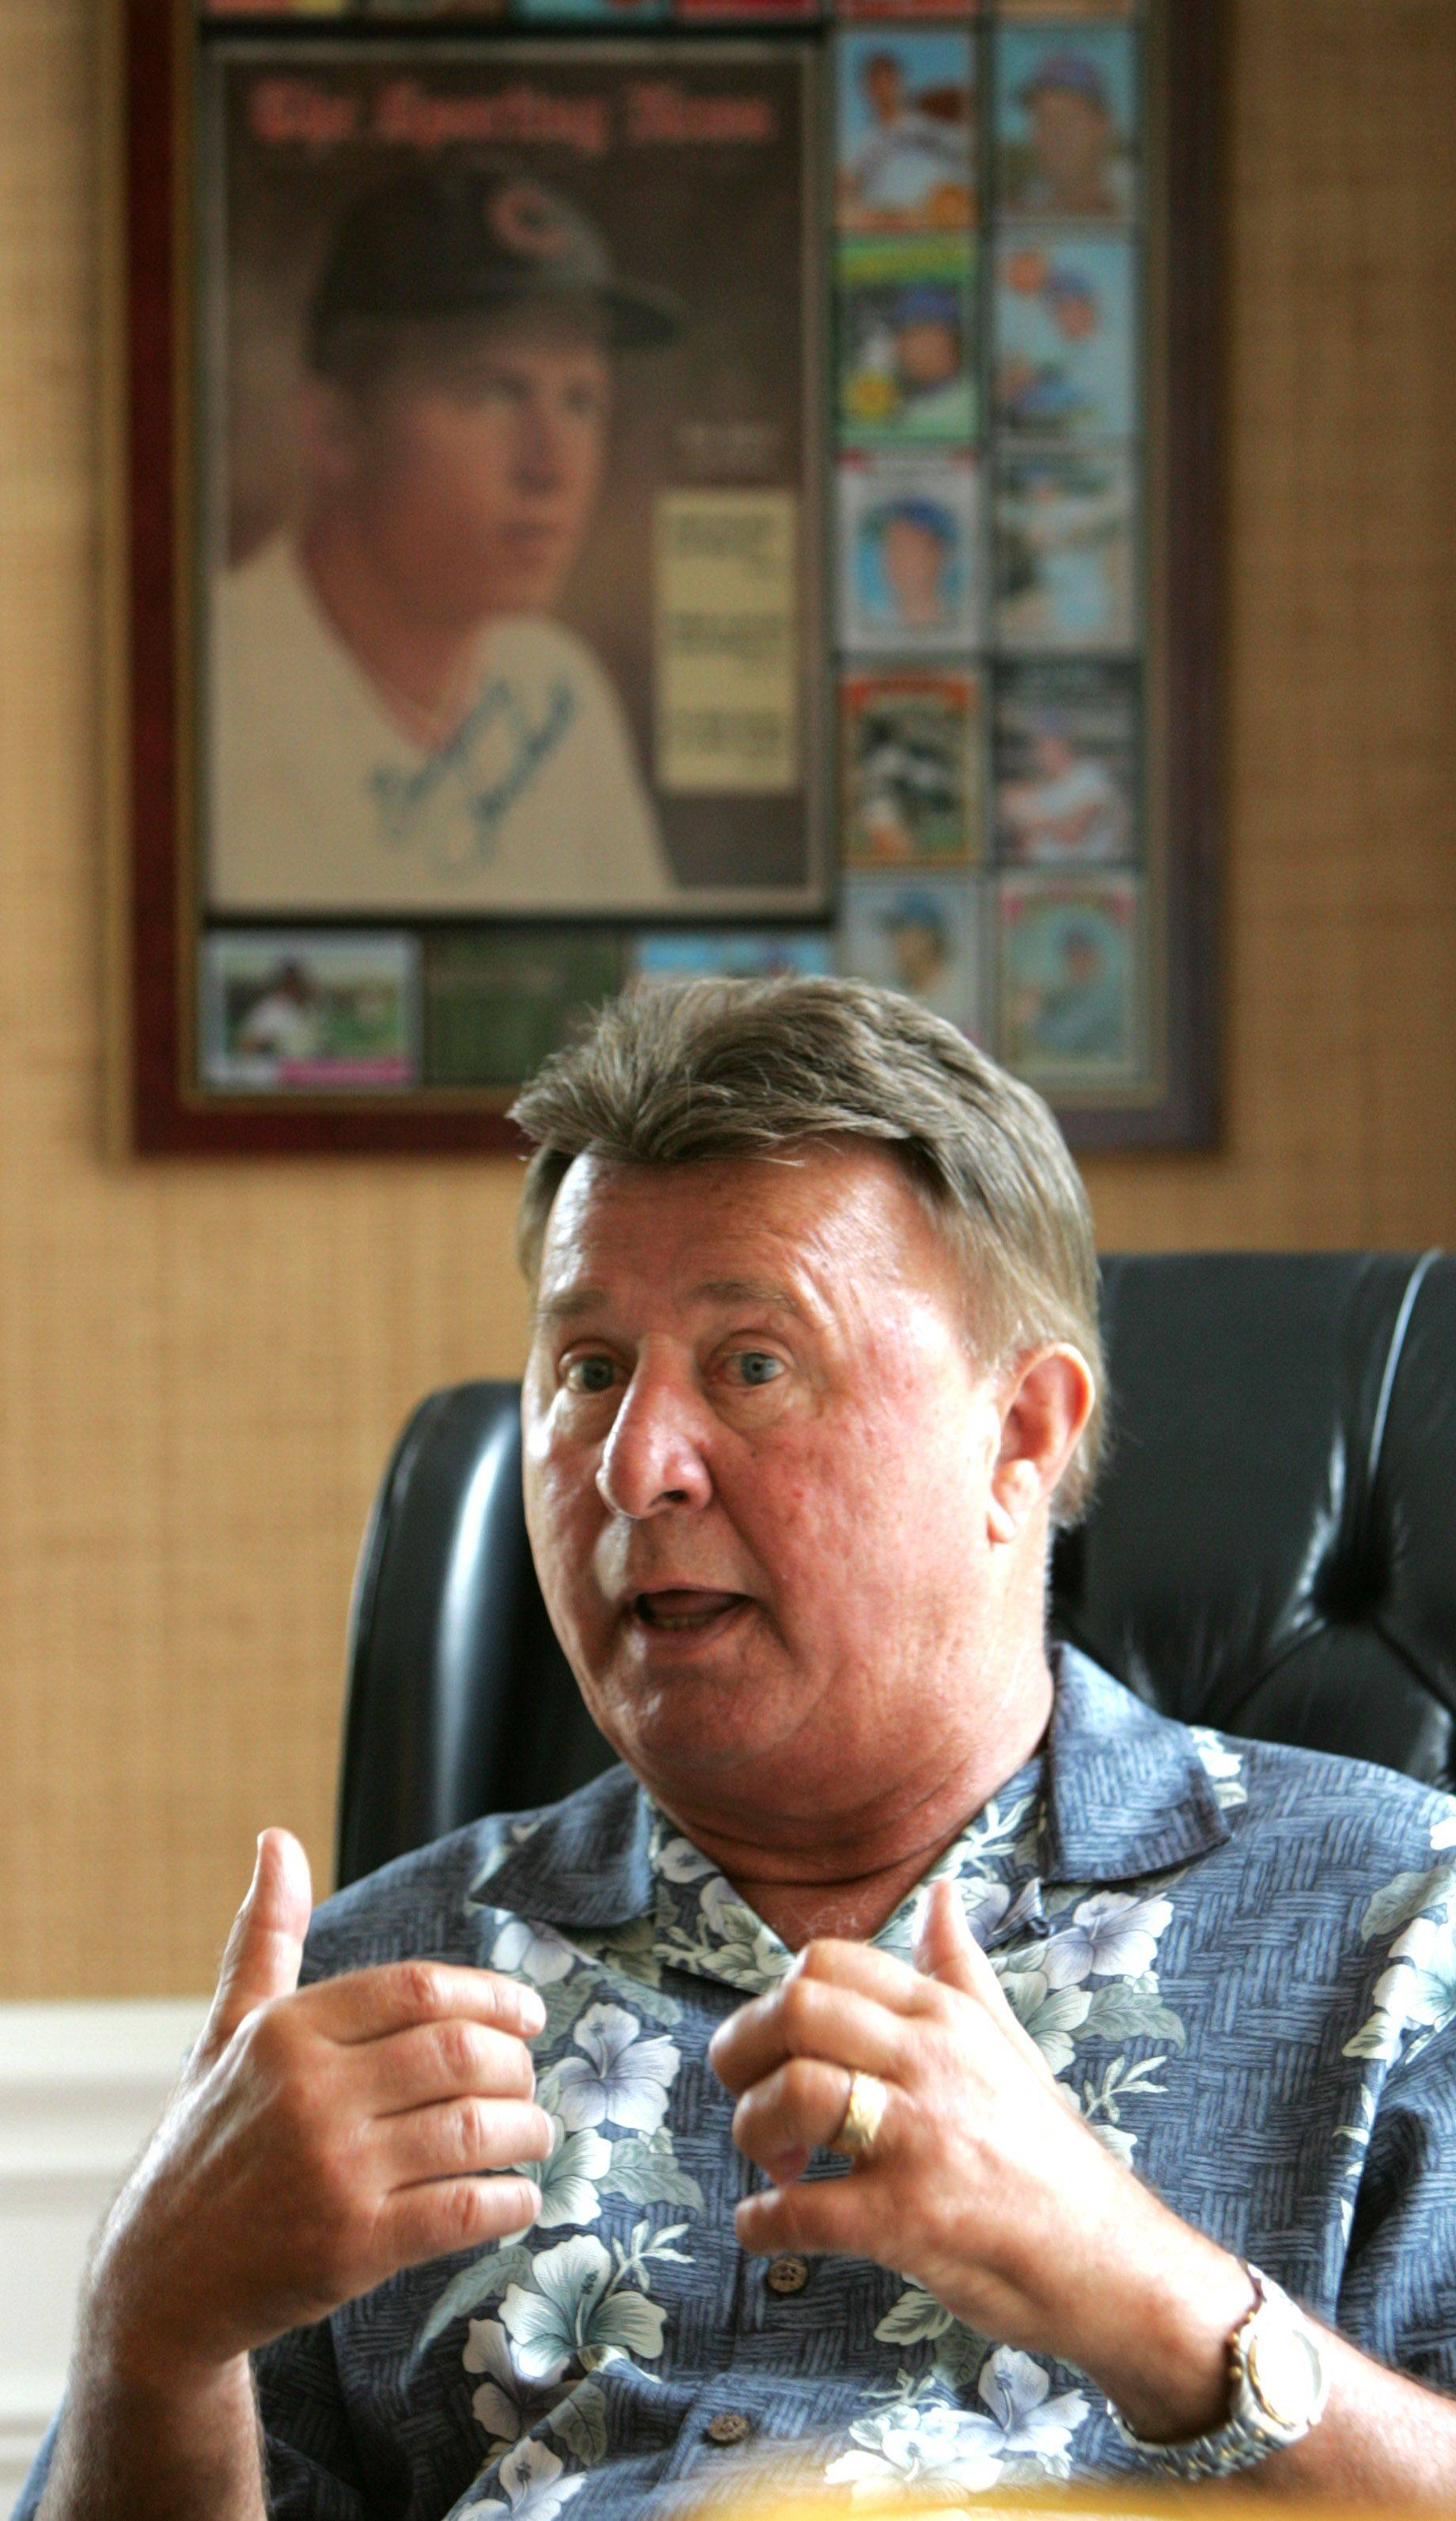 """This guy was just an unbelievable guy. You're never going to meet anybody in your lifetime  ever  like Ron Santo. He was without a doubt the toughest man I will ever meet in my life. Thom Brennaman, former radio broadcast partner on WMVP radio"